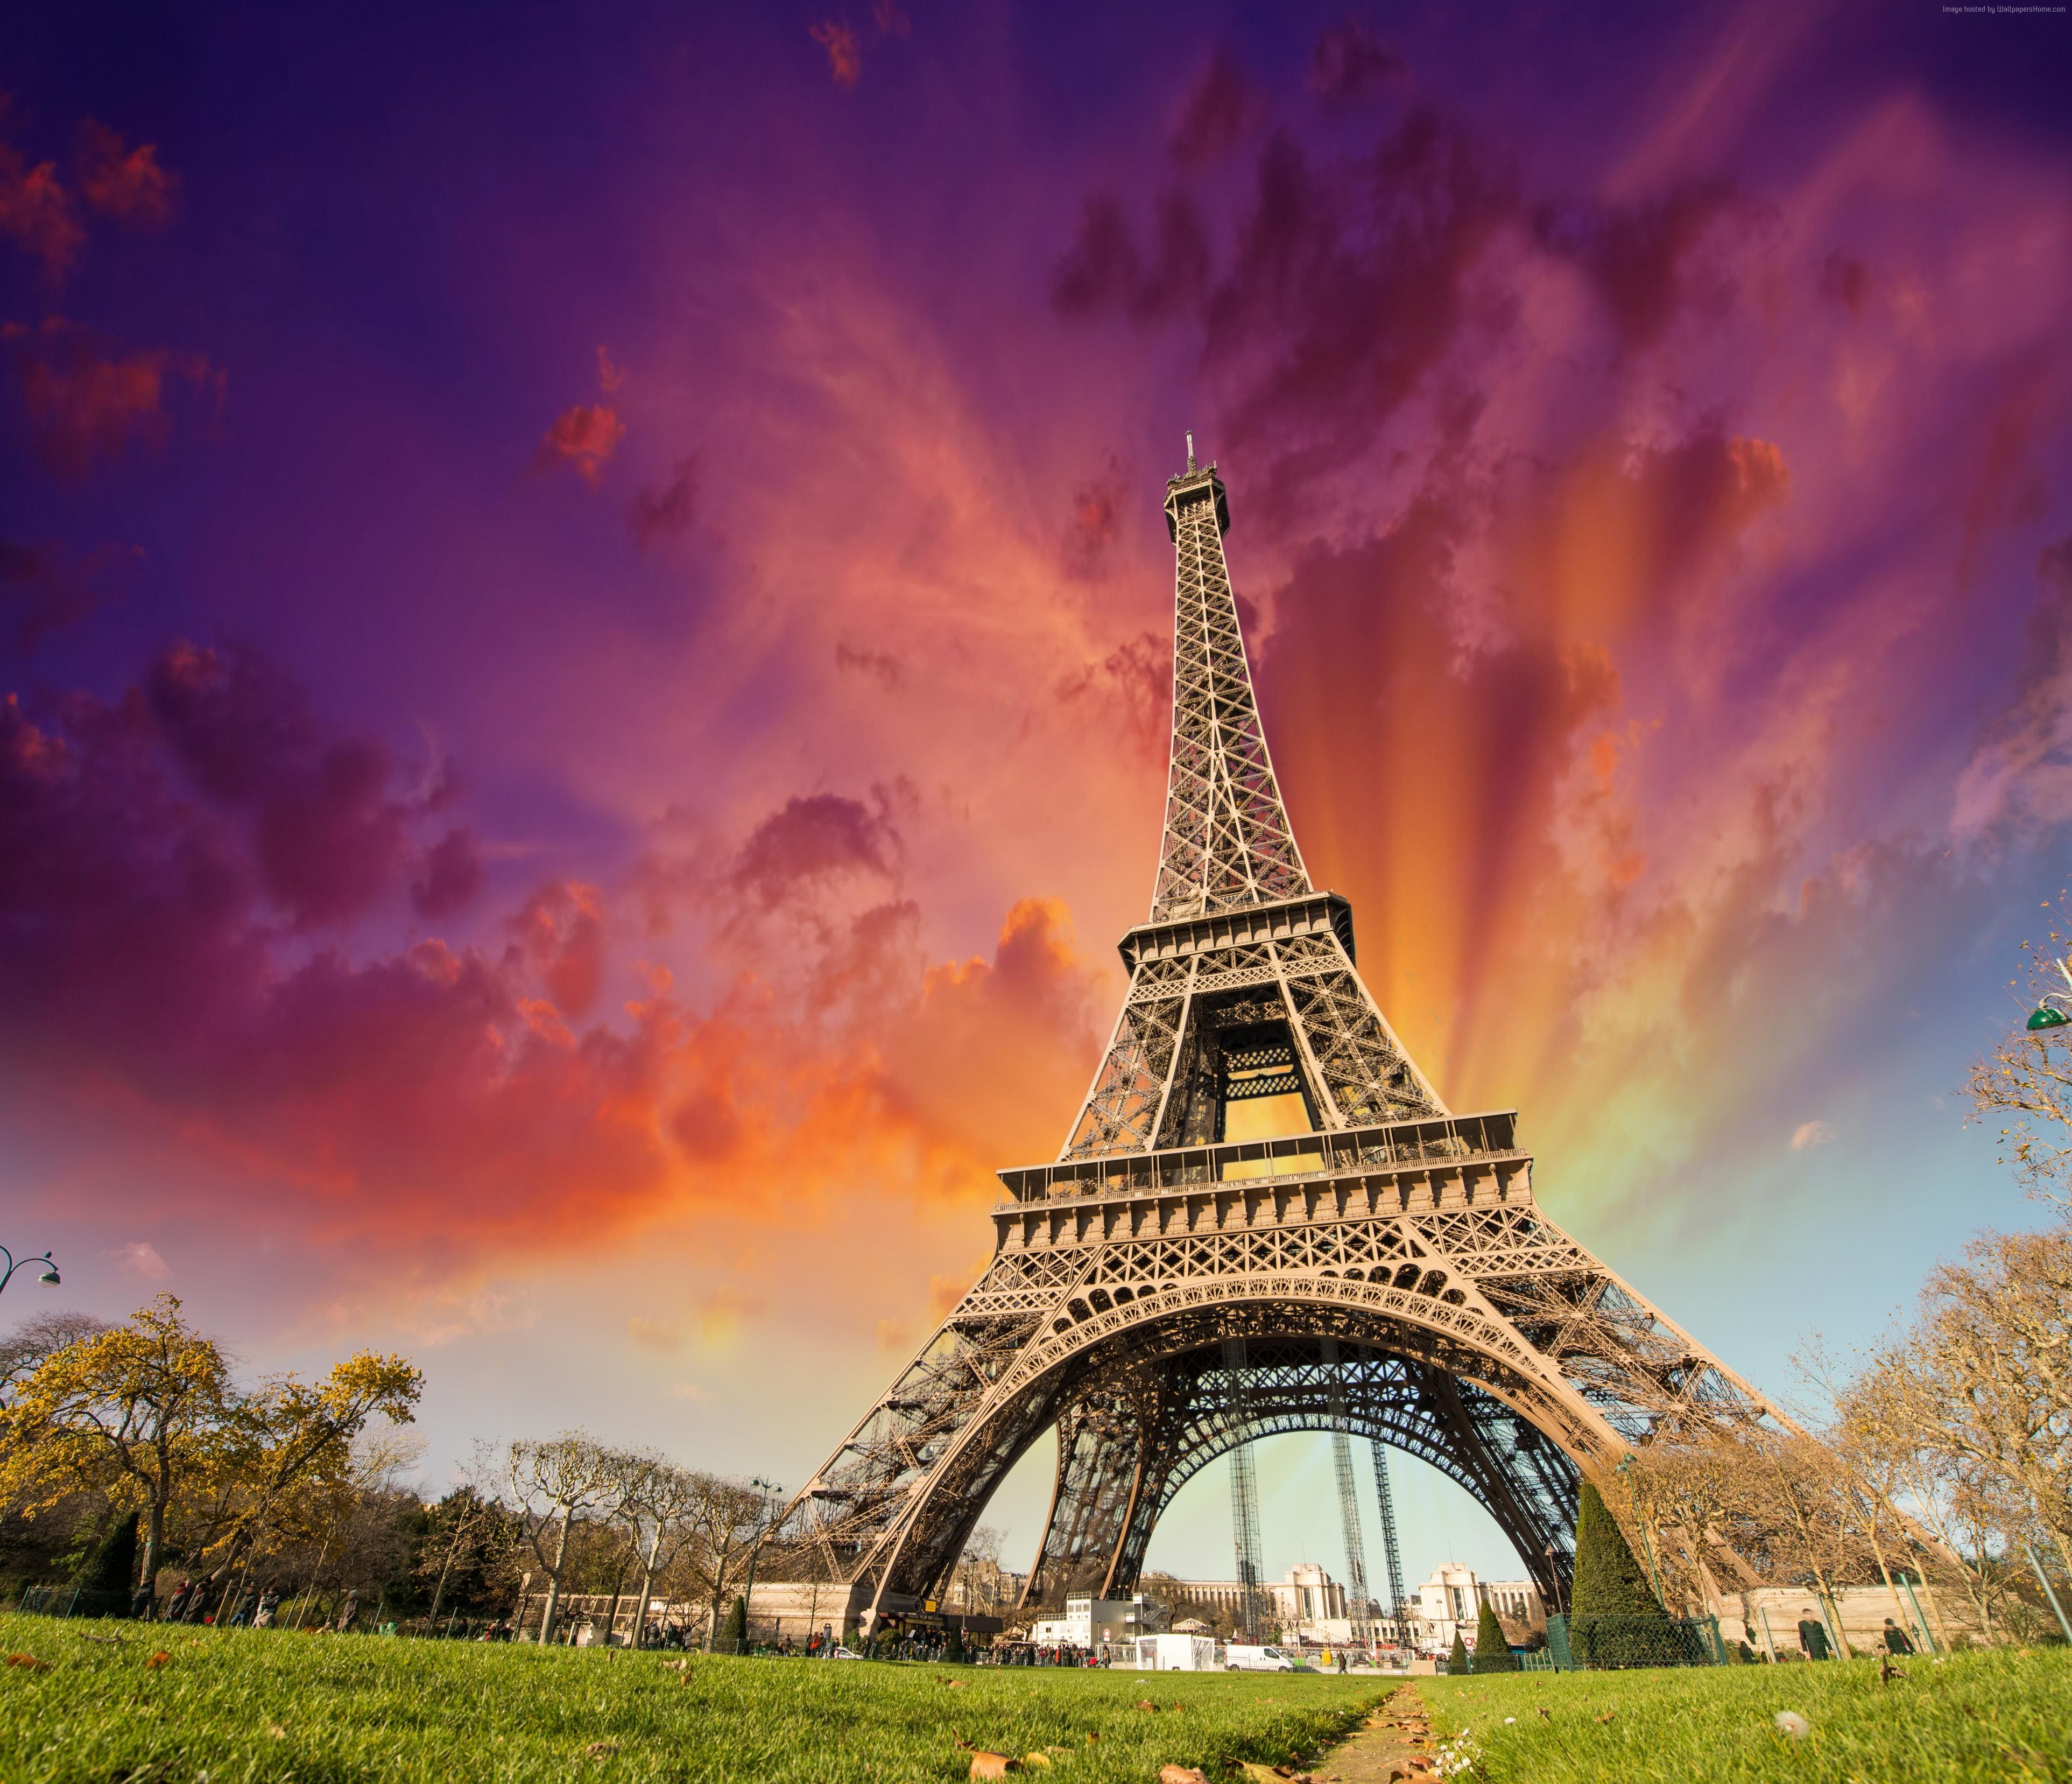 eiffel tower paris france europe hd desktop wallpaper high